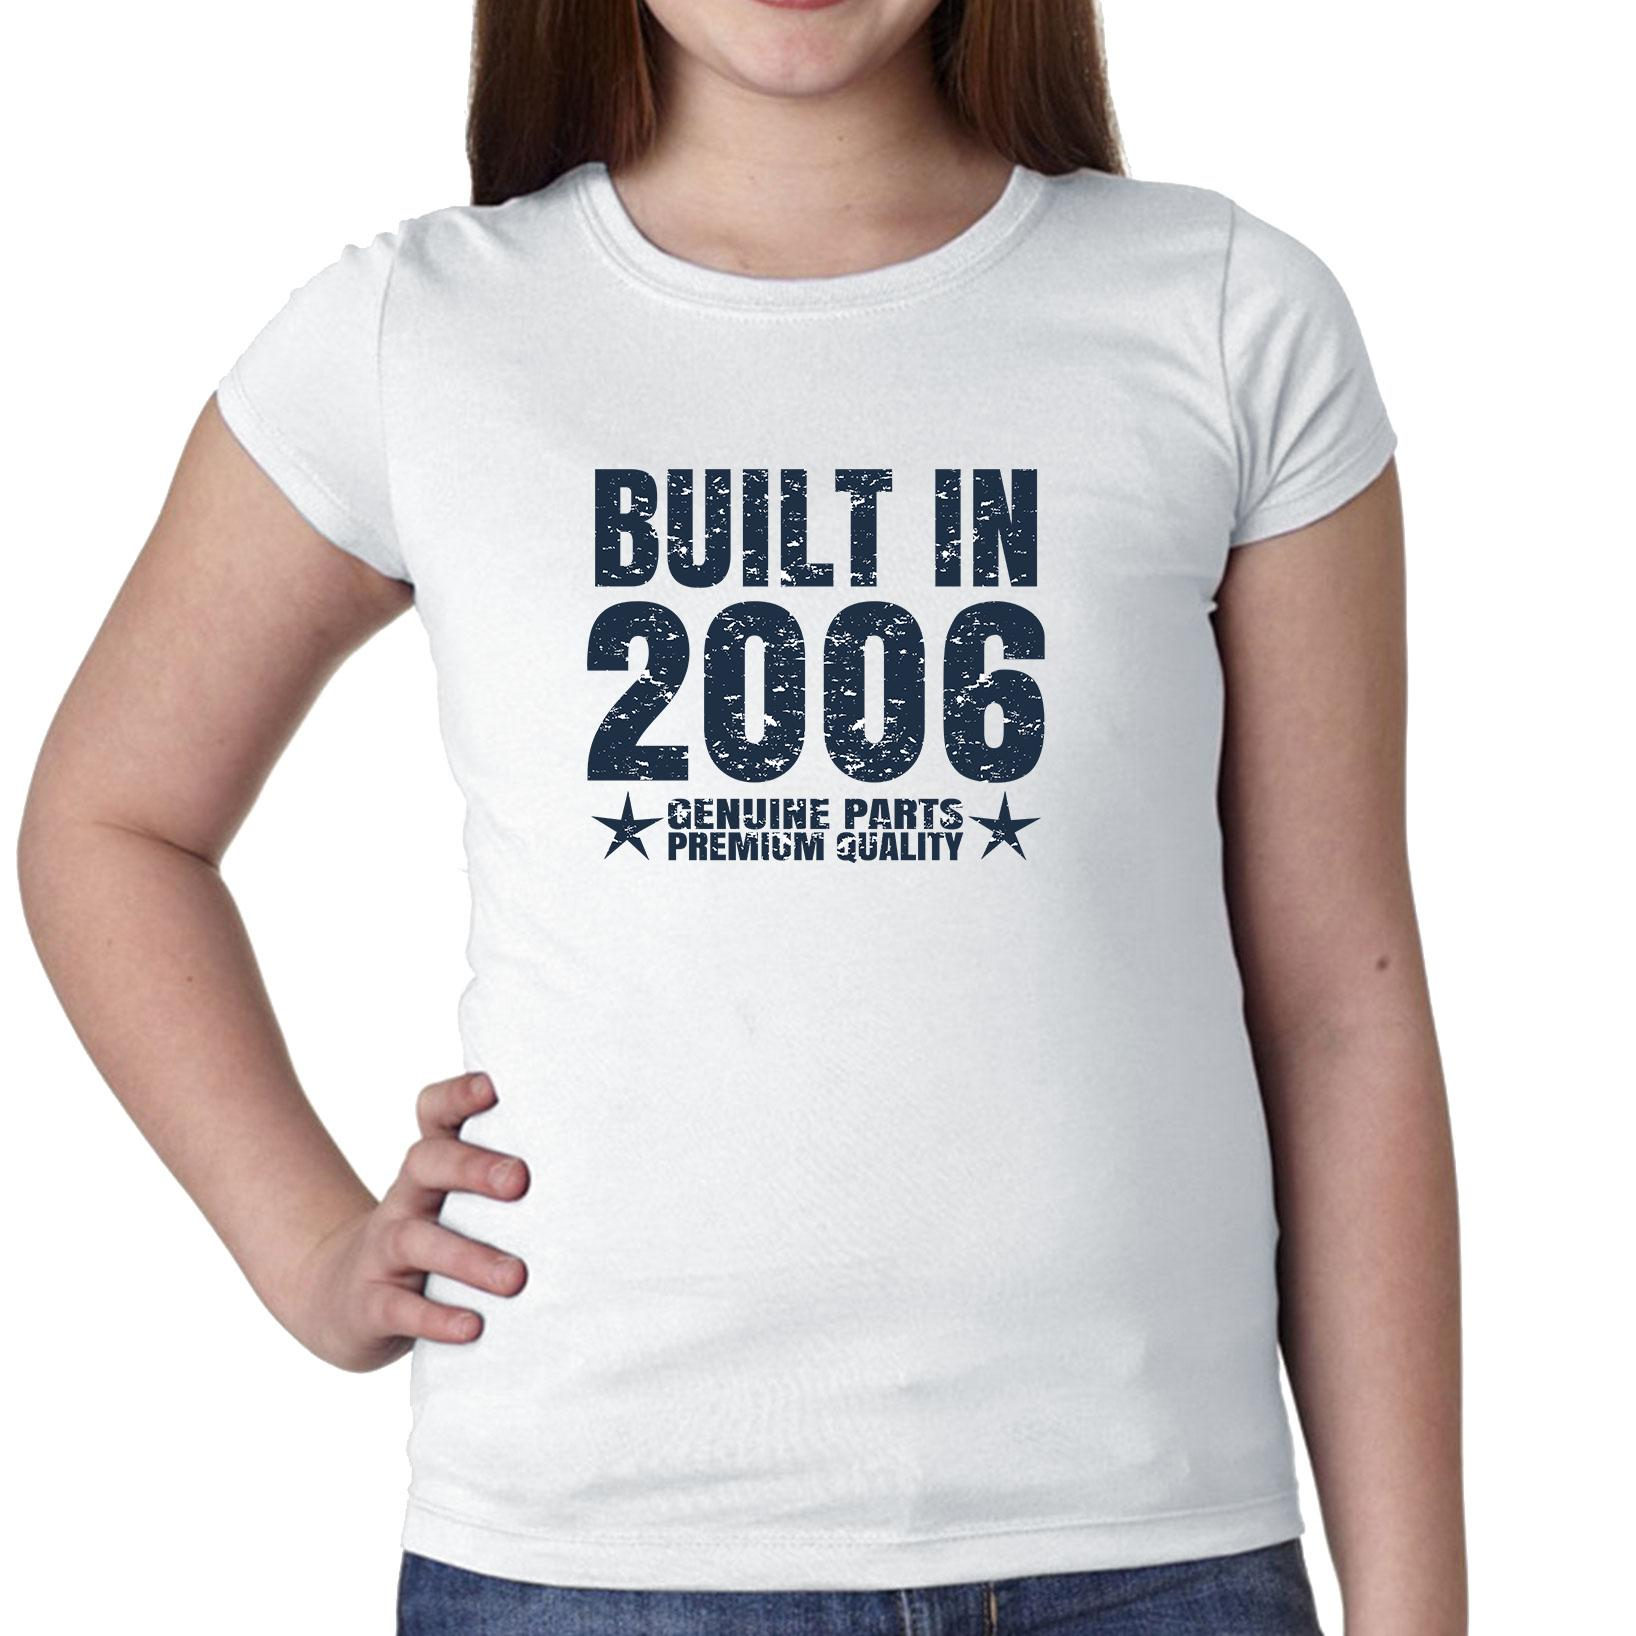 Built In 2006 - Perfect Birthday Present Gift - Vintage Girl's Cotton Youth T-Shirt